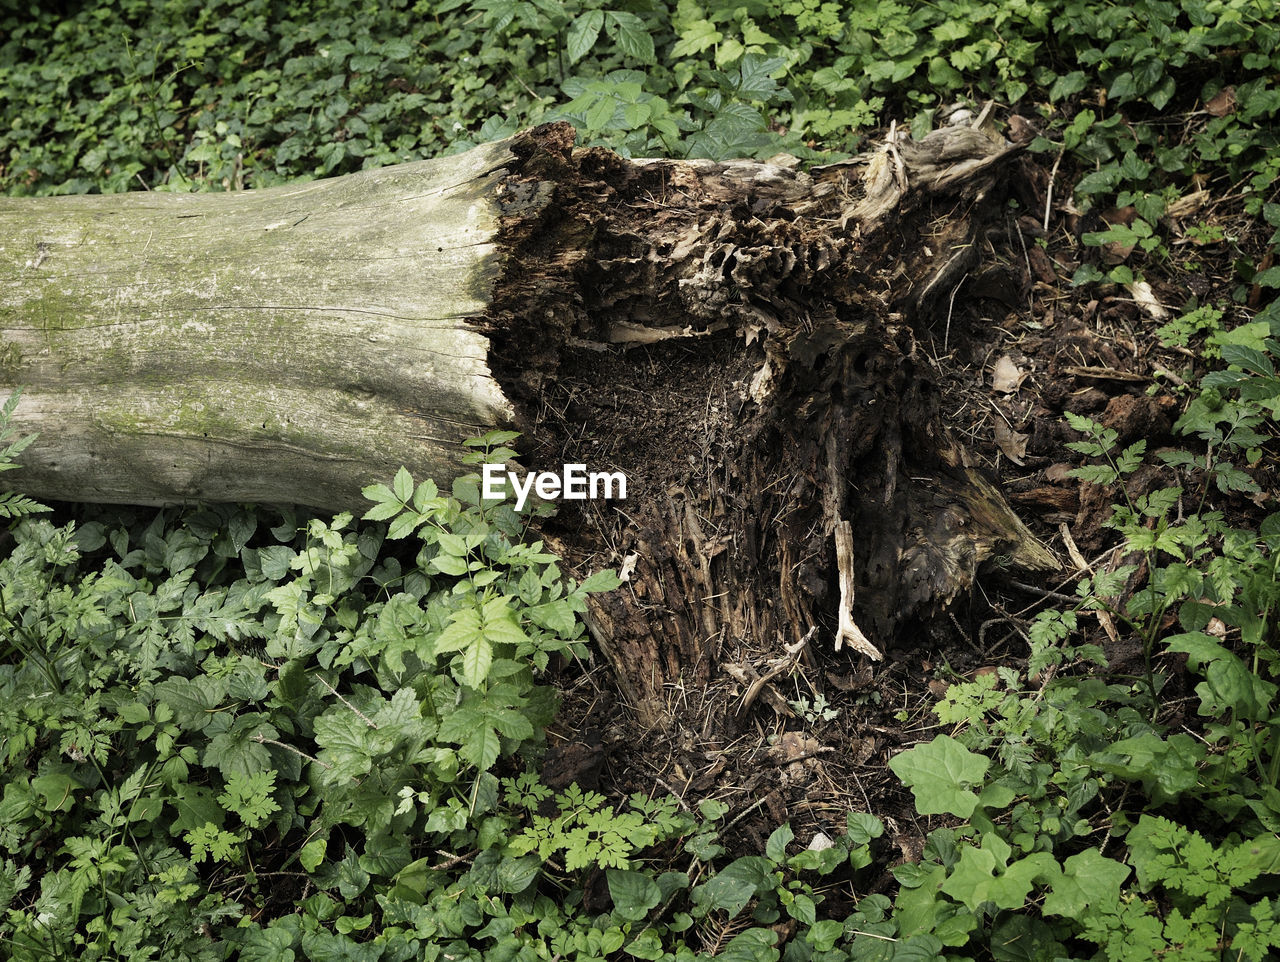 plant, growth, plant part, tree, green color, nature, leaf, land, forest, no people, day, wood - material, field, outdoors, tree trunk, trunk, close-up, tranquility, bark, high angle view